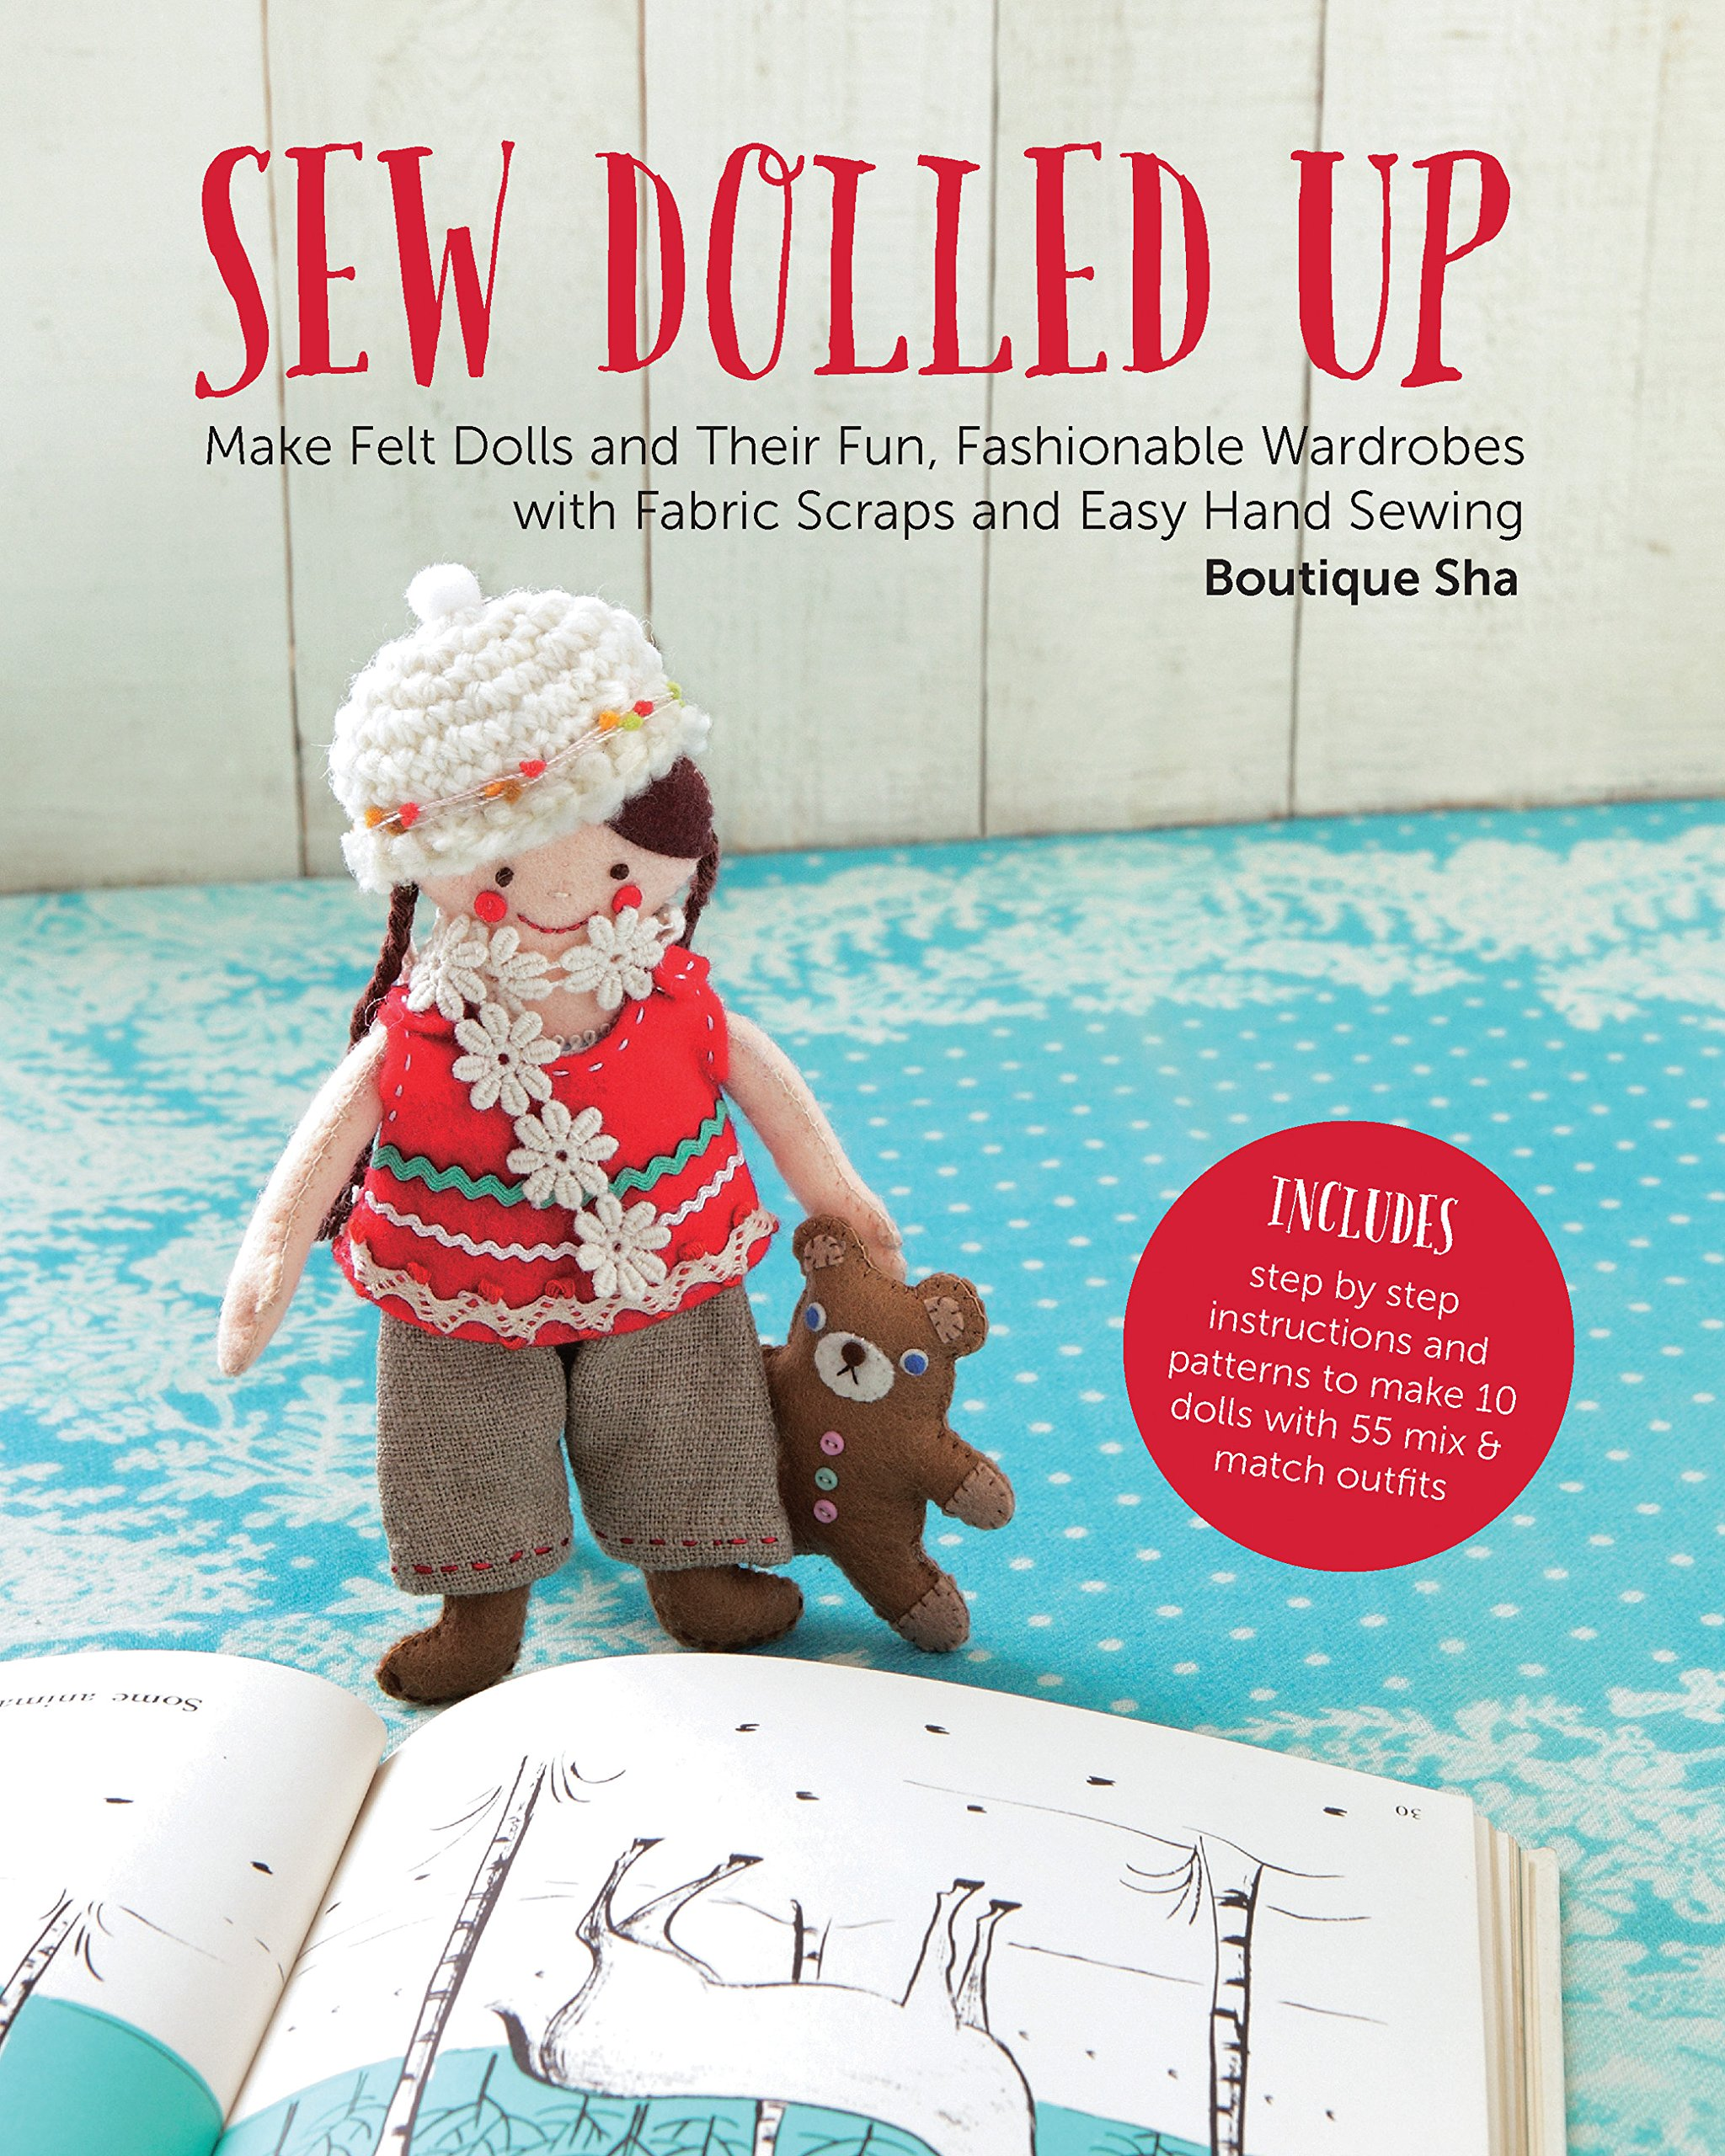 Download Sew Dolled Up: Make Felt Dolls and Their Fun, Fashionable Wardrobes with Fabric Scraps and Easy Hand Sewing ebook